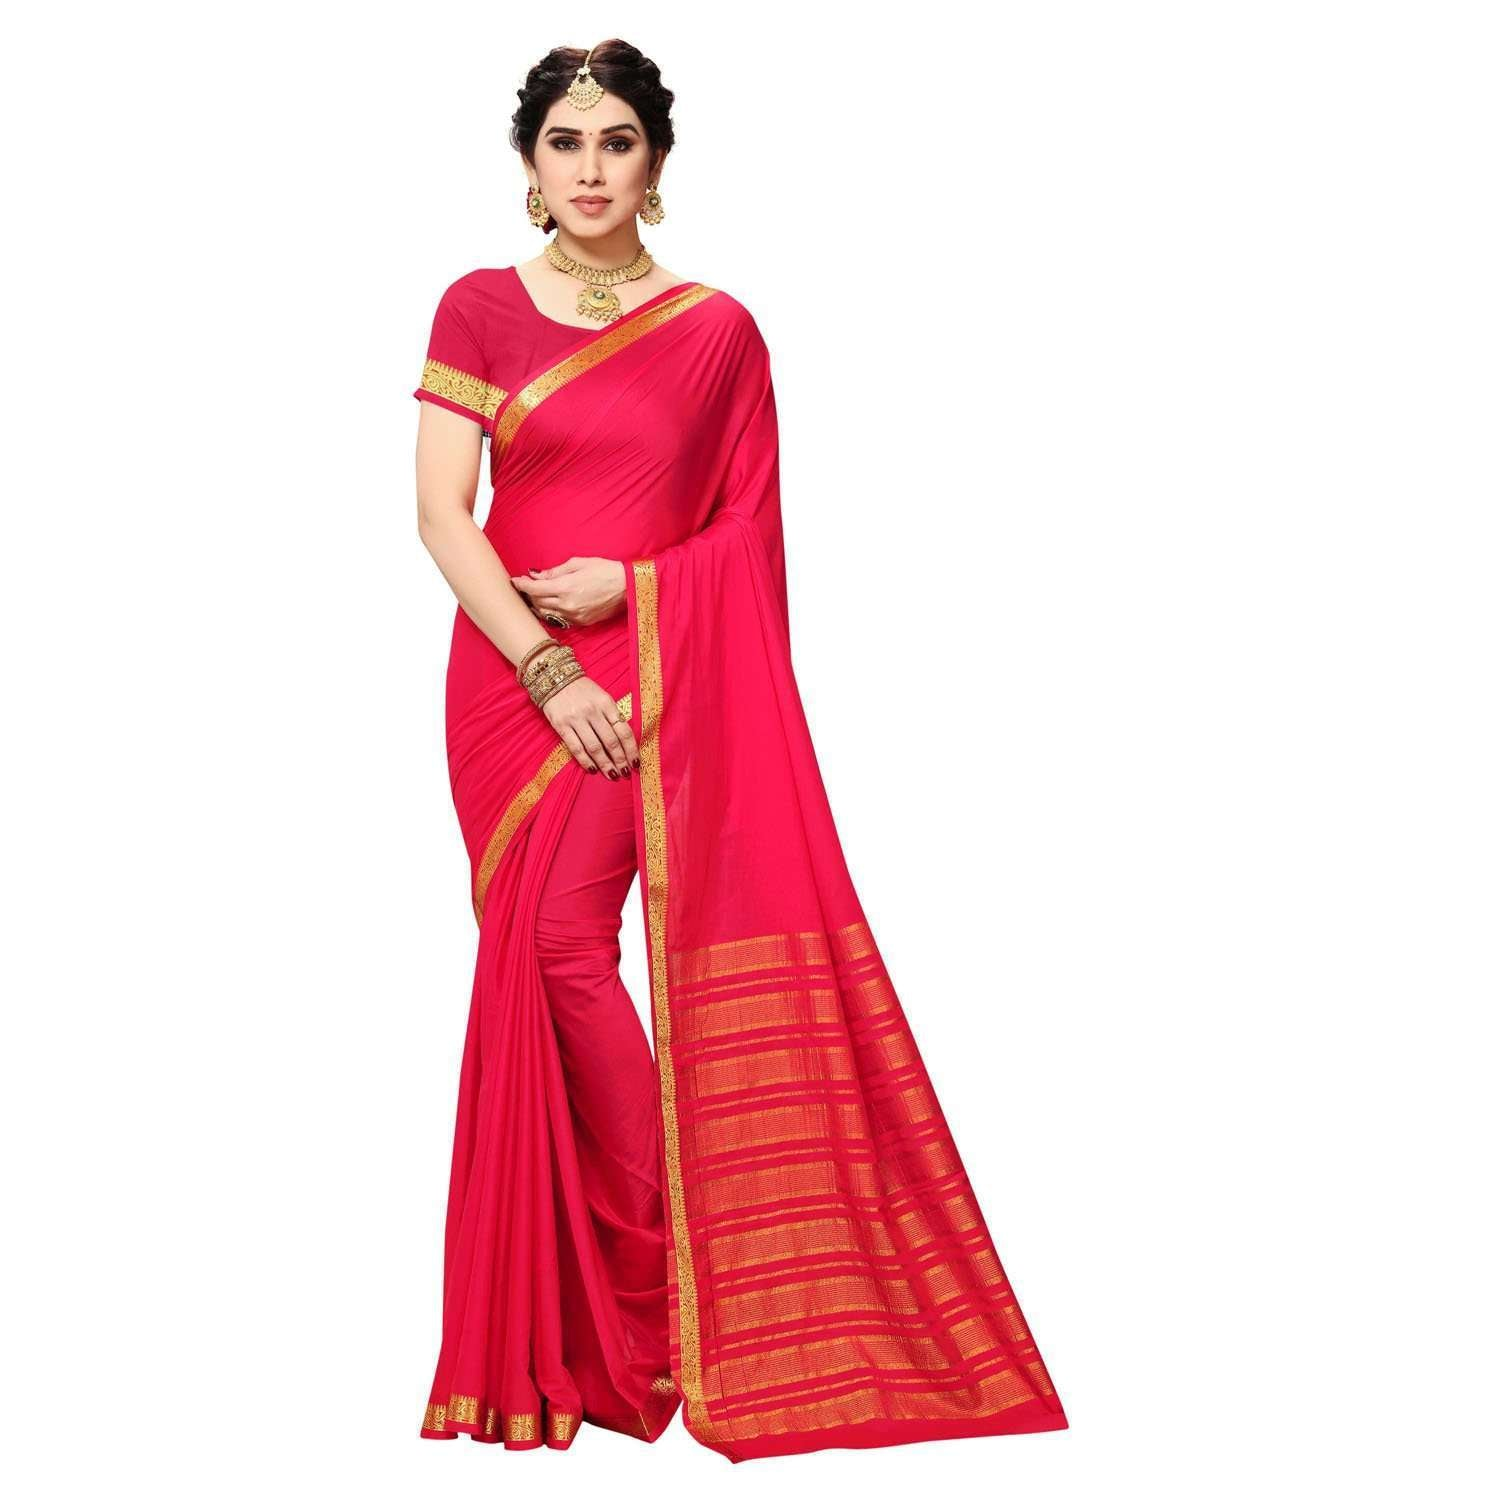 arars Women's Kanchipuram Pattu crepe plain Silk Saree With Blouse (512_strawberry&strawberry )